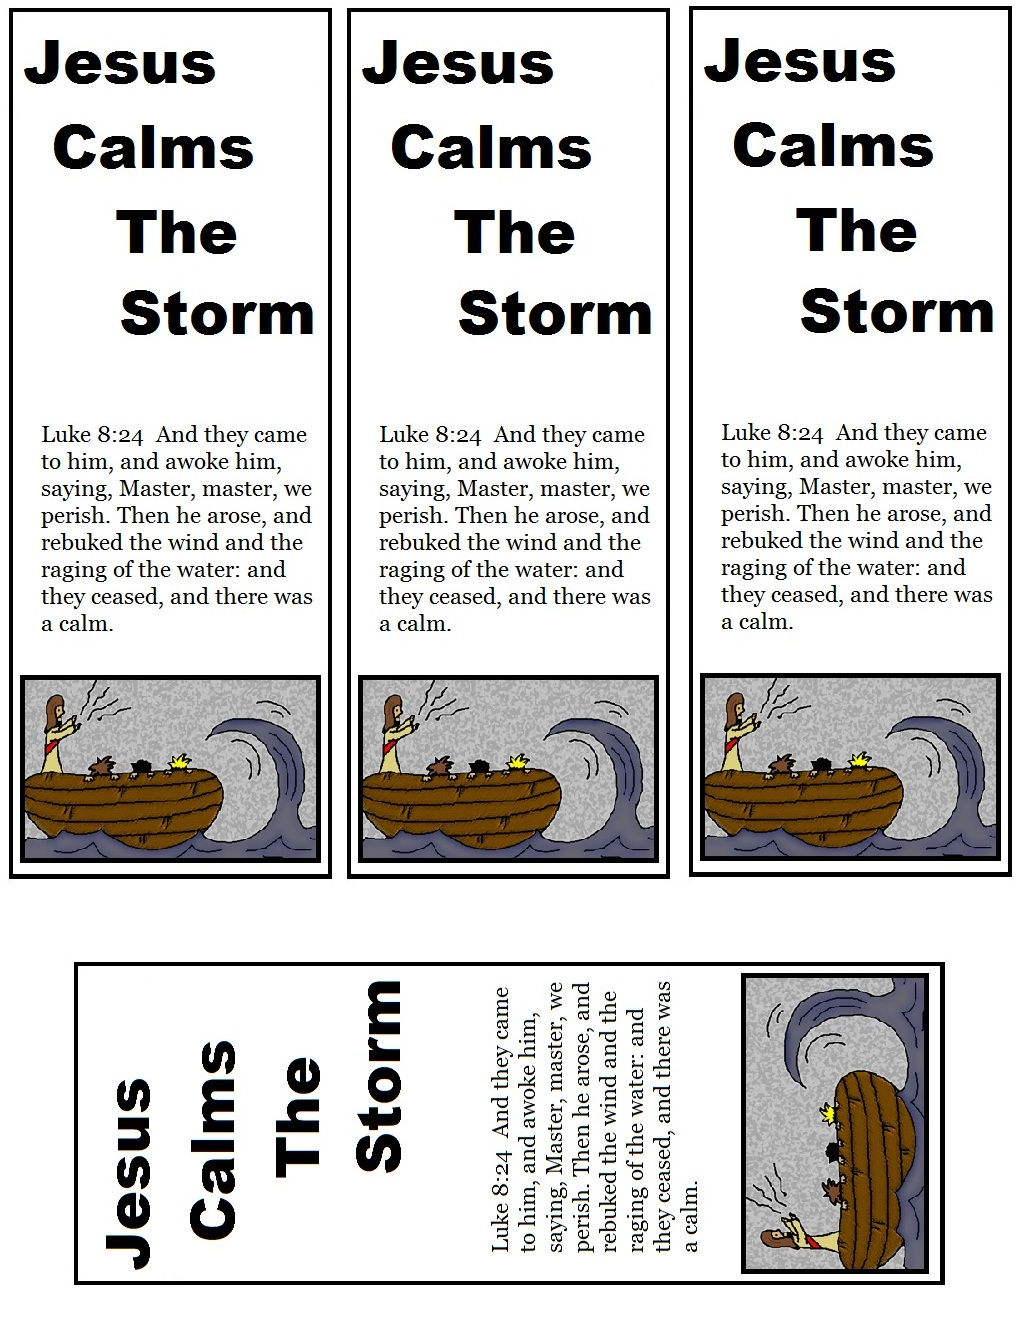 Jesus Calms The Storm Sunday School Lesson